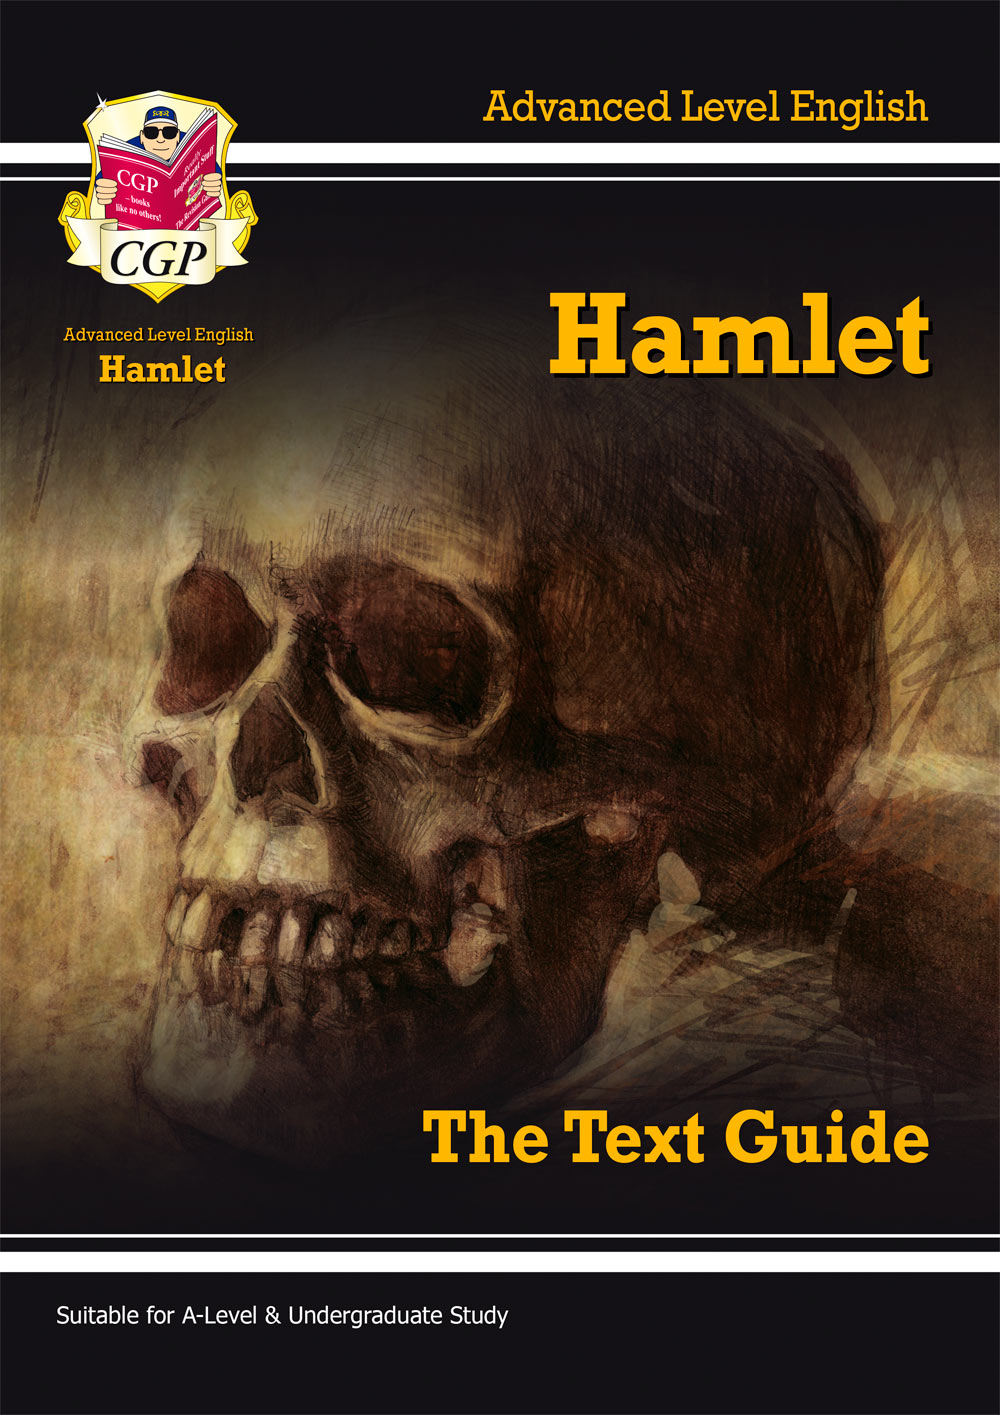 ETHA72 - A-level English Text Guide - Hamlet